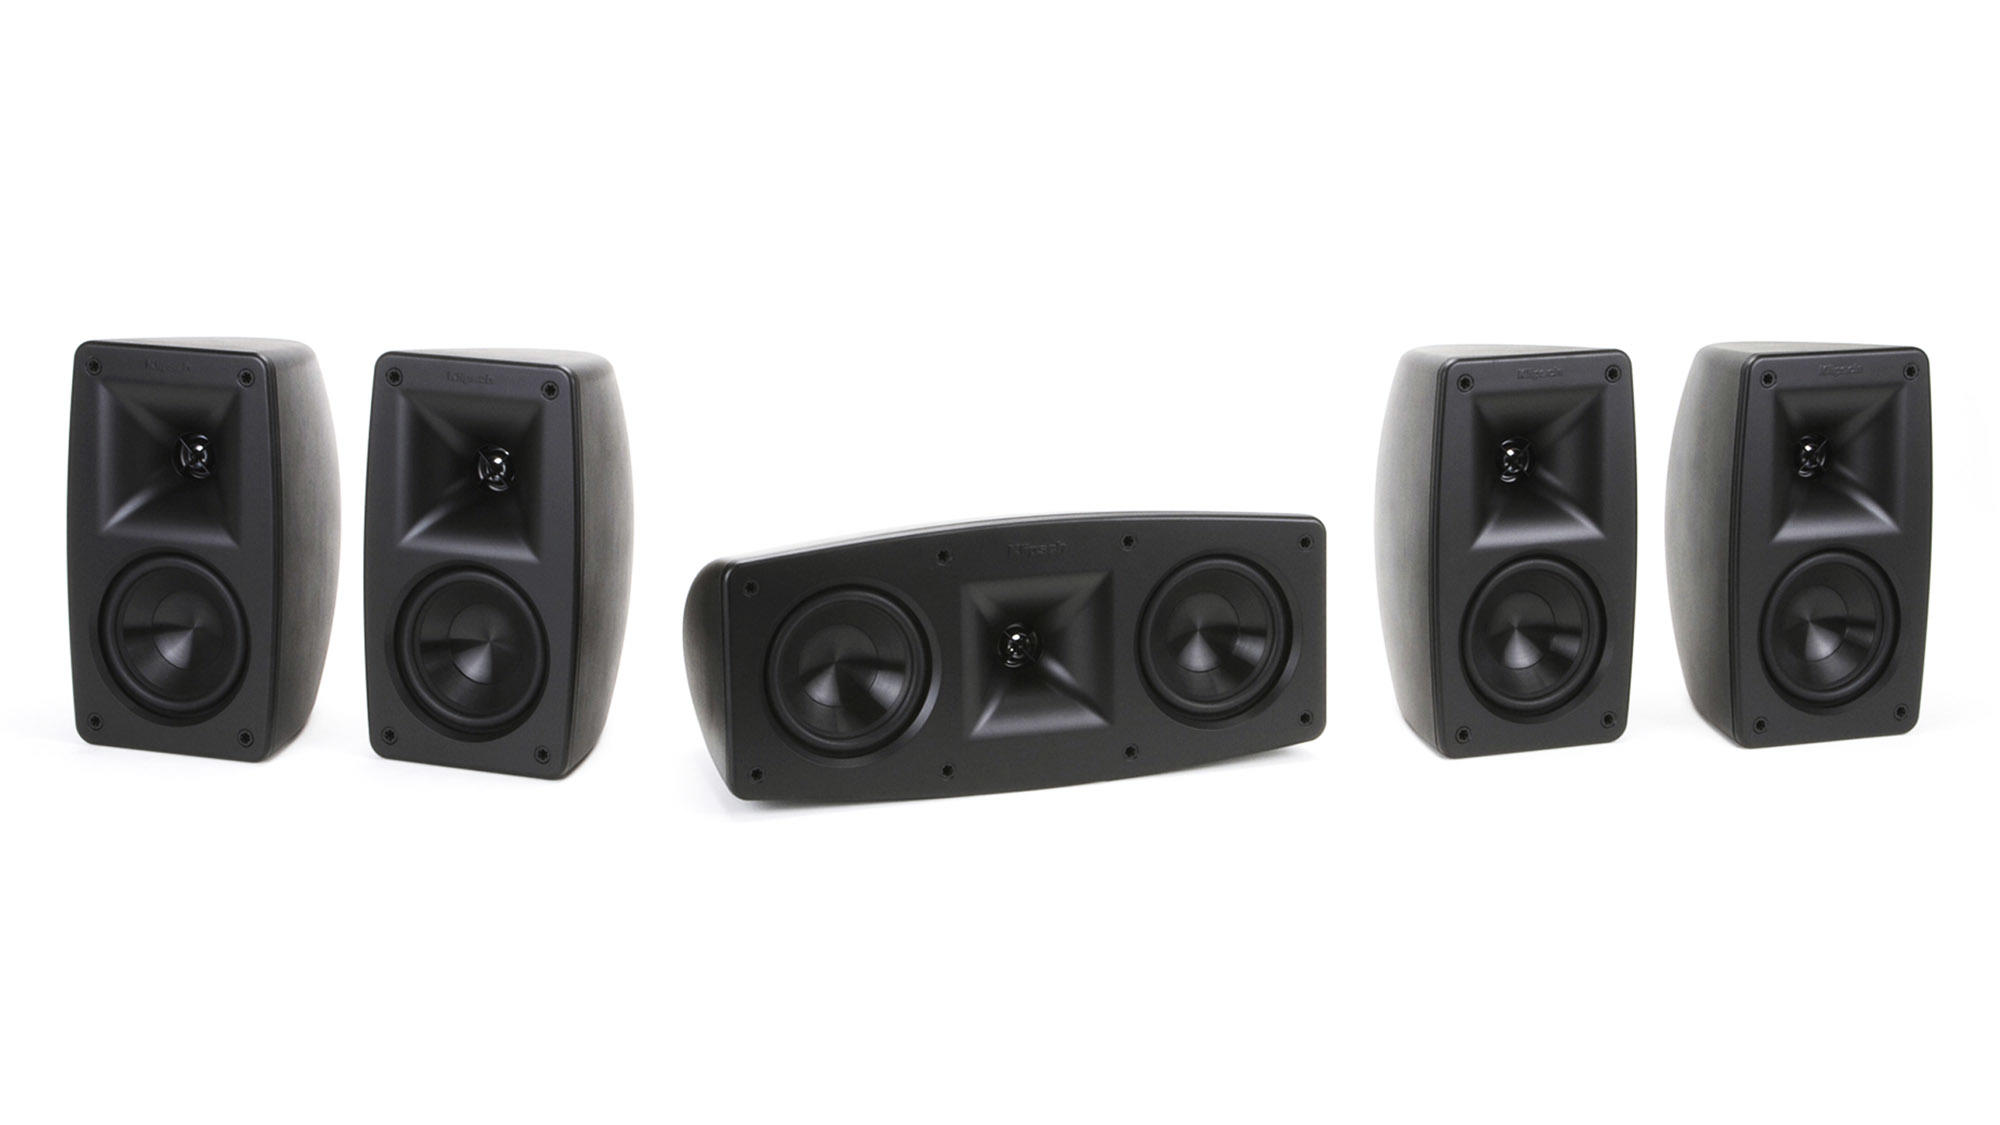 klipsch-quintet-5-0-home-theater-speaker-system-speakers-under-1000